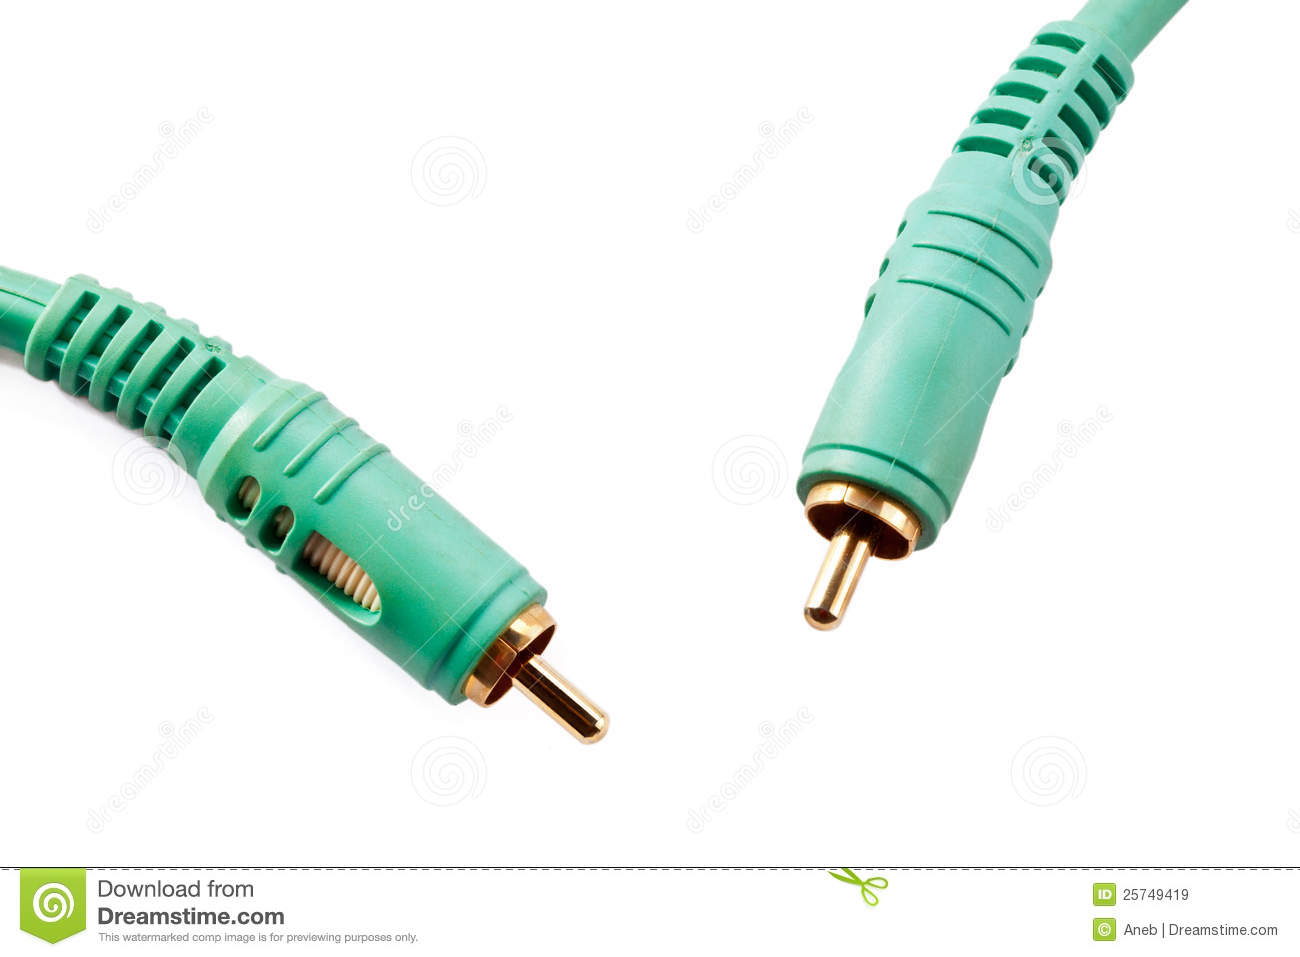 Optical cables